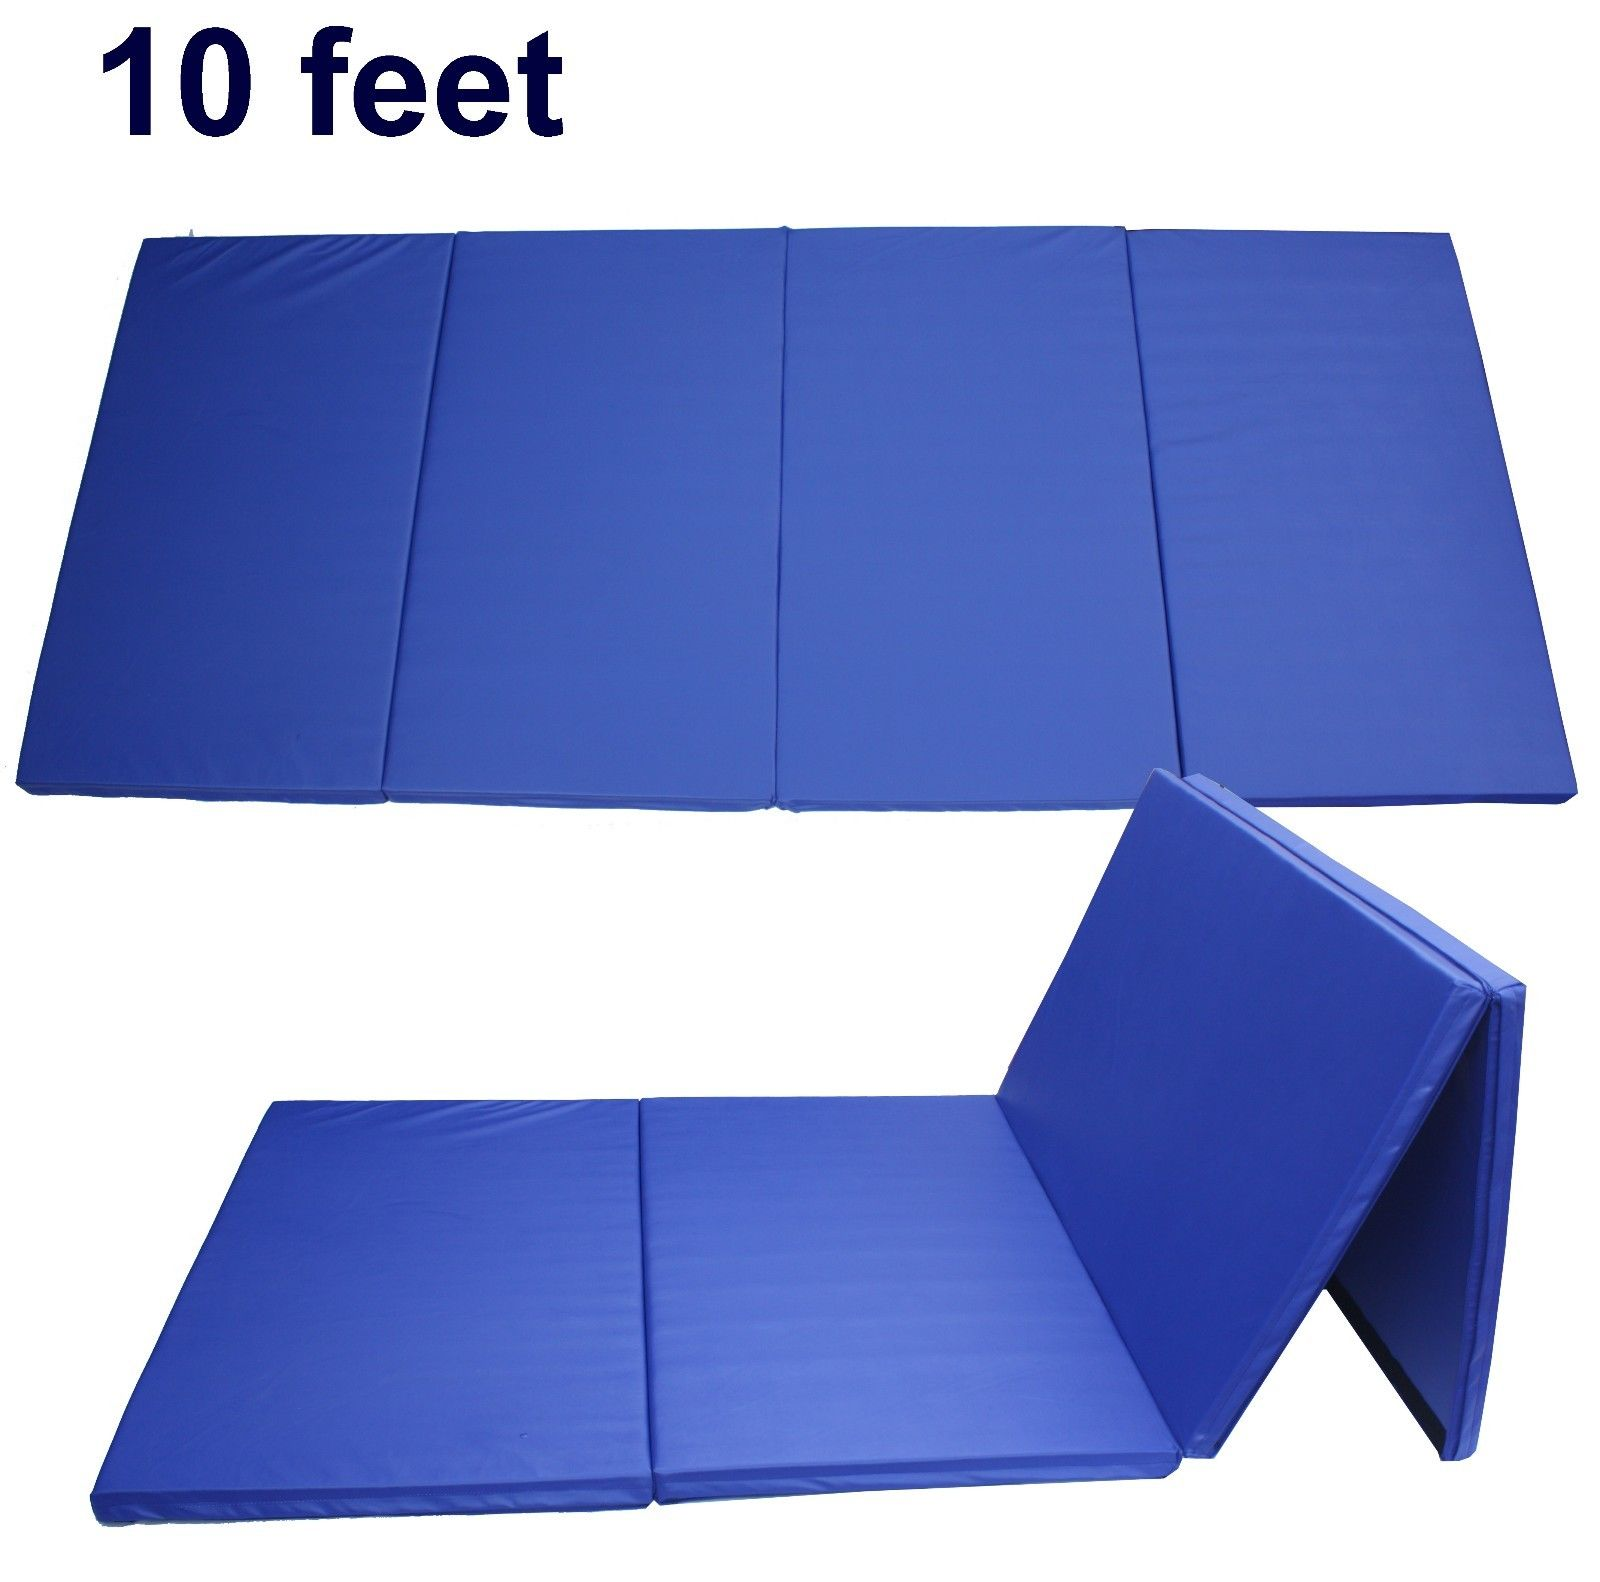 Gymnastics Mats 8 Or 10 Gym2dance Com